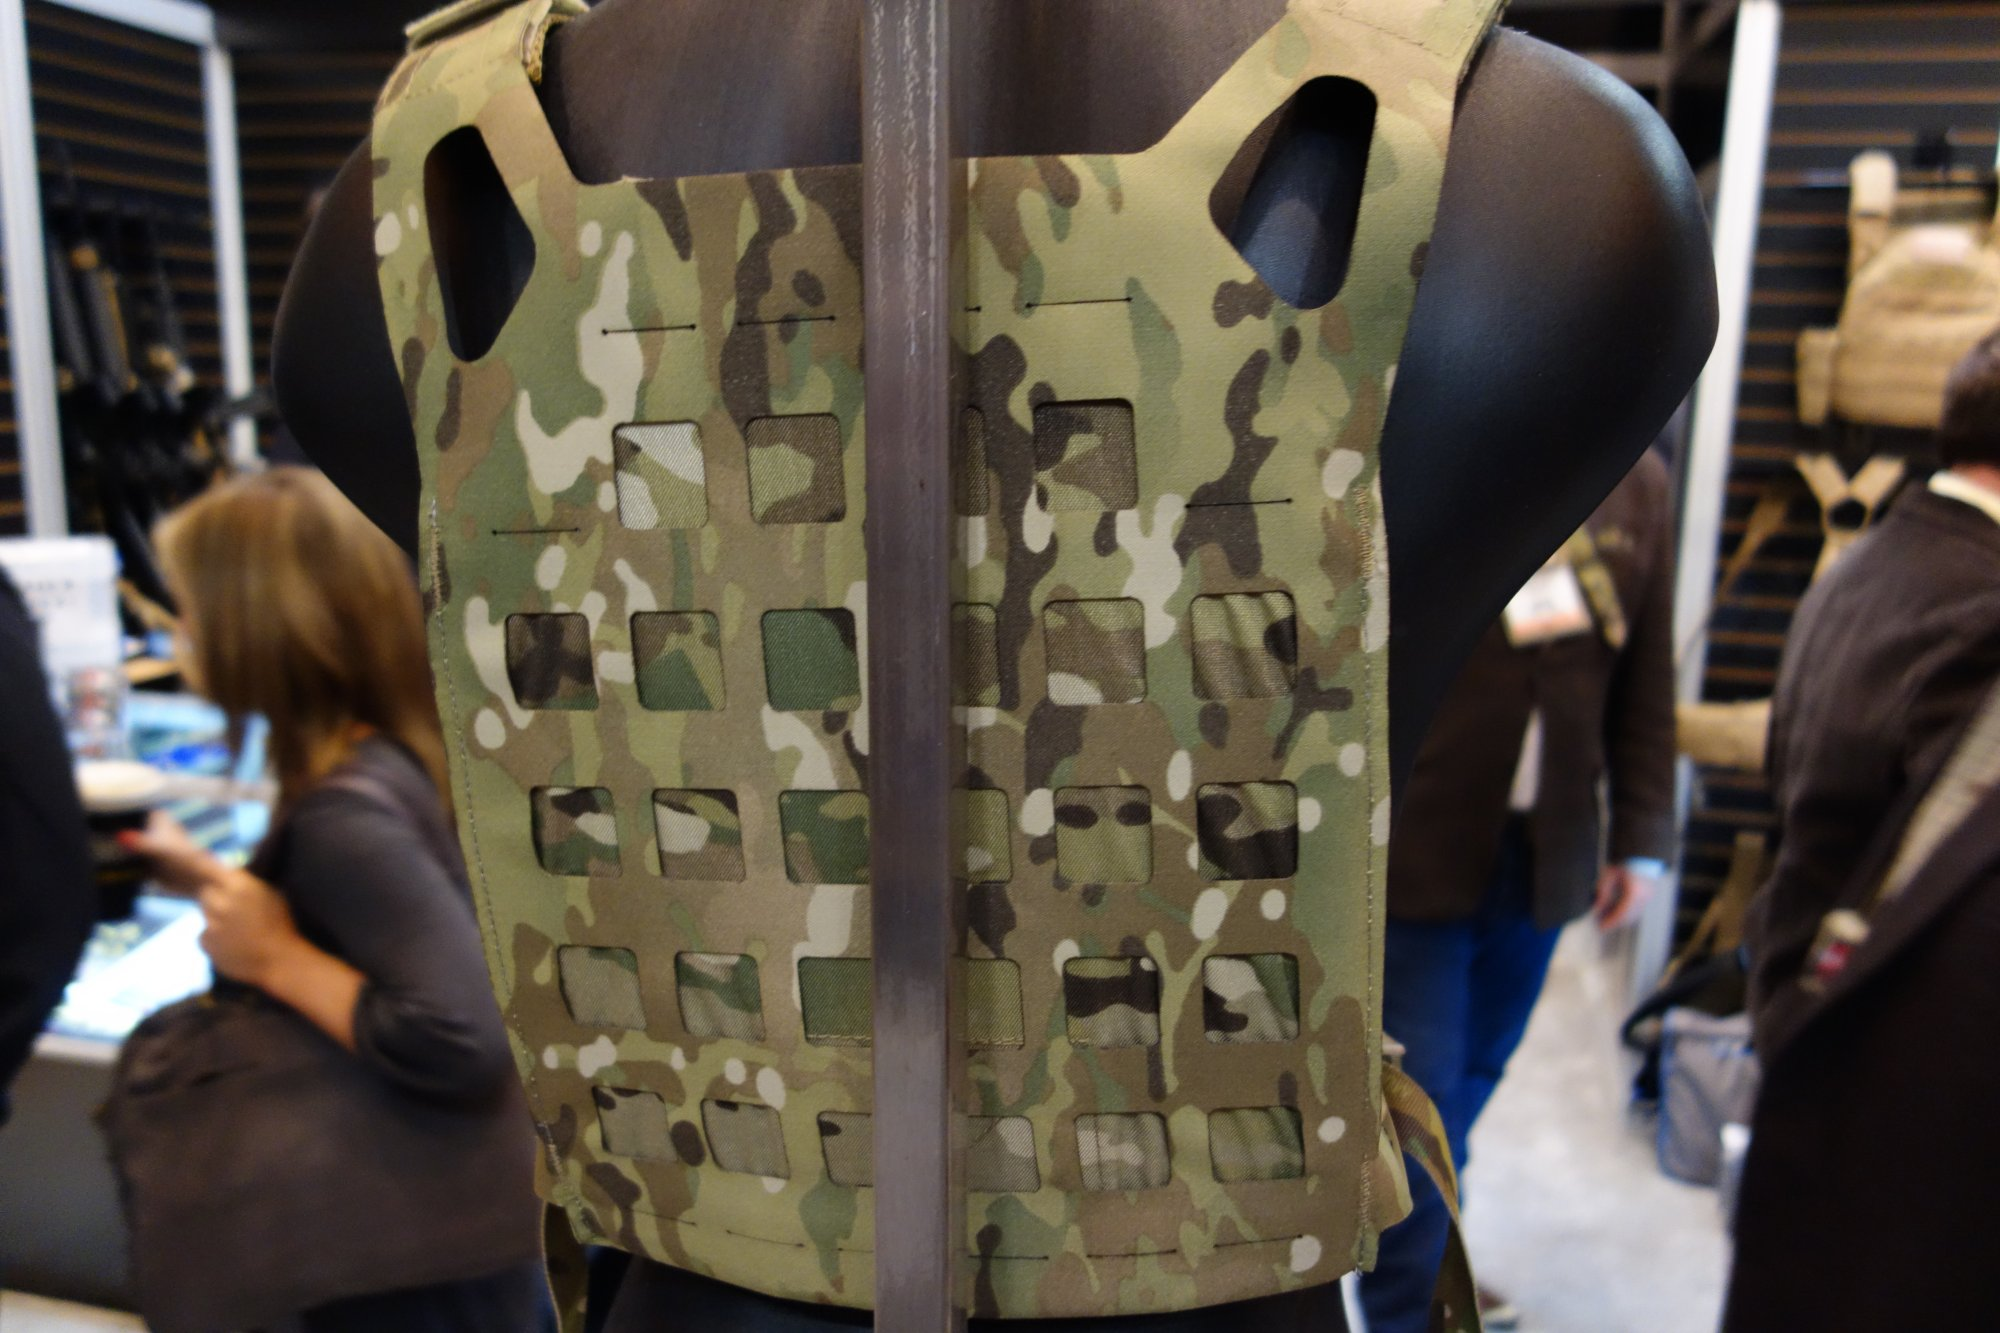 Blue Force Gear BFG PLATEminus Ultra Lightweight Low Profile Low Visibility Tactical Armor Plate Carrier with MOLLEminus and ULTRAcomp Crye MultiCam Camo Pattern at SHOT Show 2013 David Crane DefenseReview.com DR 8 Blue Force Gear (BFG) PLATEminus Ultra Lightweight Low Profile/Low Visibility Tactical Armor Plate Carrier and BELTminus and SPLITminus Battle Belt/Chest Rig/Harness Systems with MOLLEminus Cutaway MOLLE System and ULTRAcomp Laminate: Tactical Body Armor Goes Super Minimalist